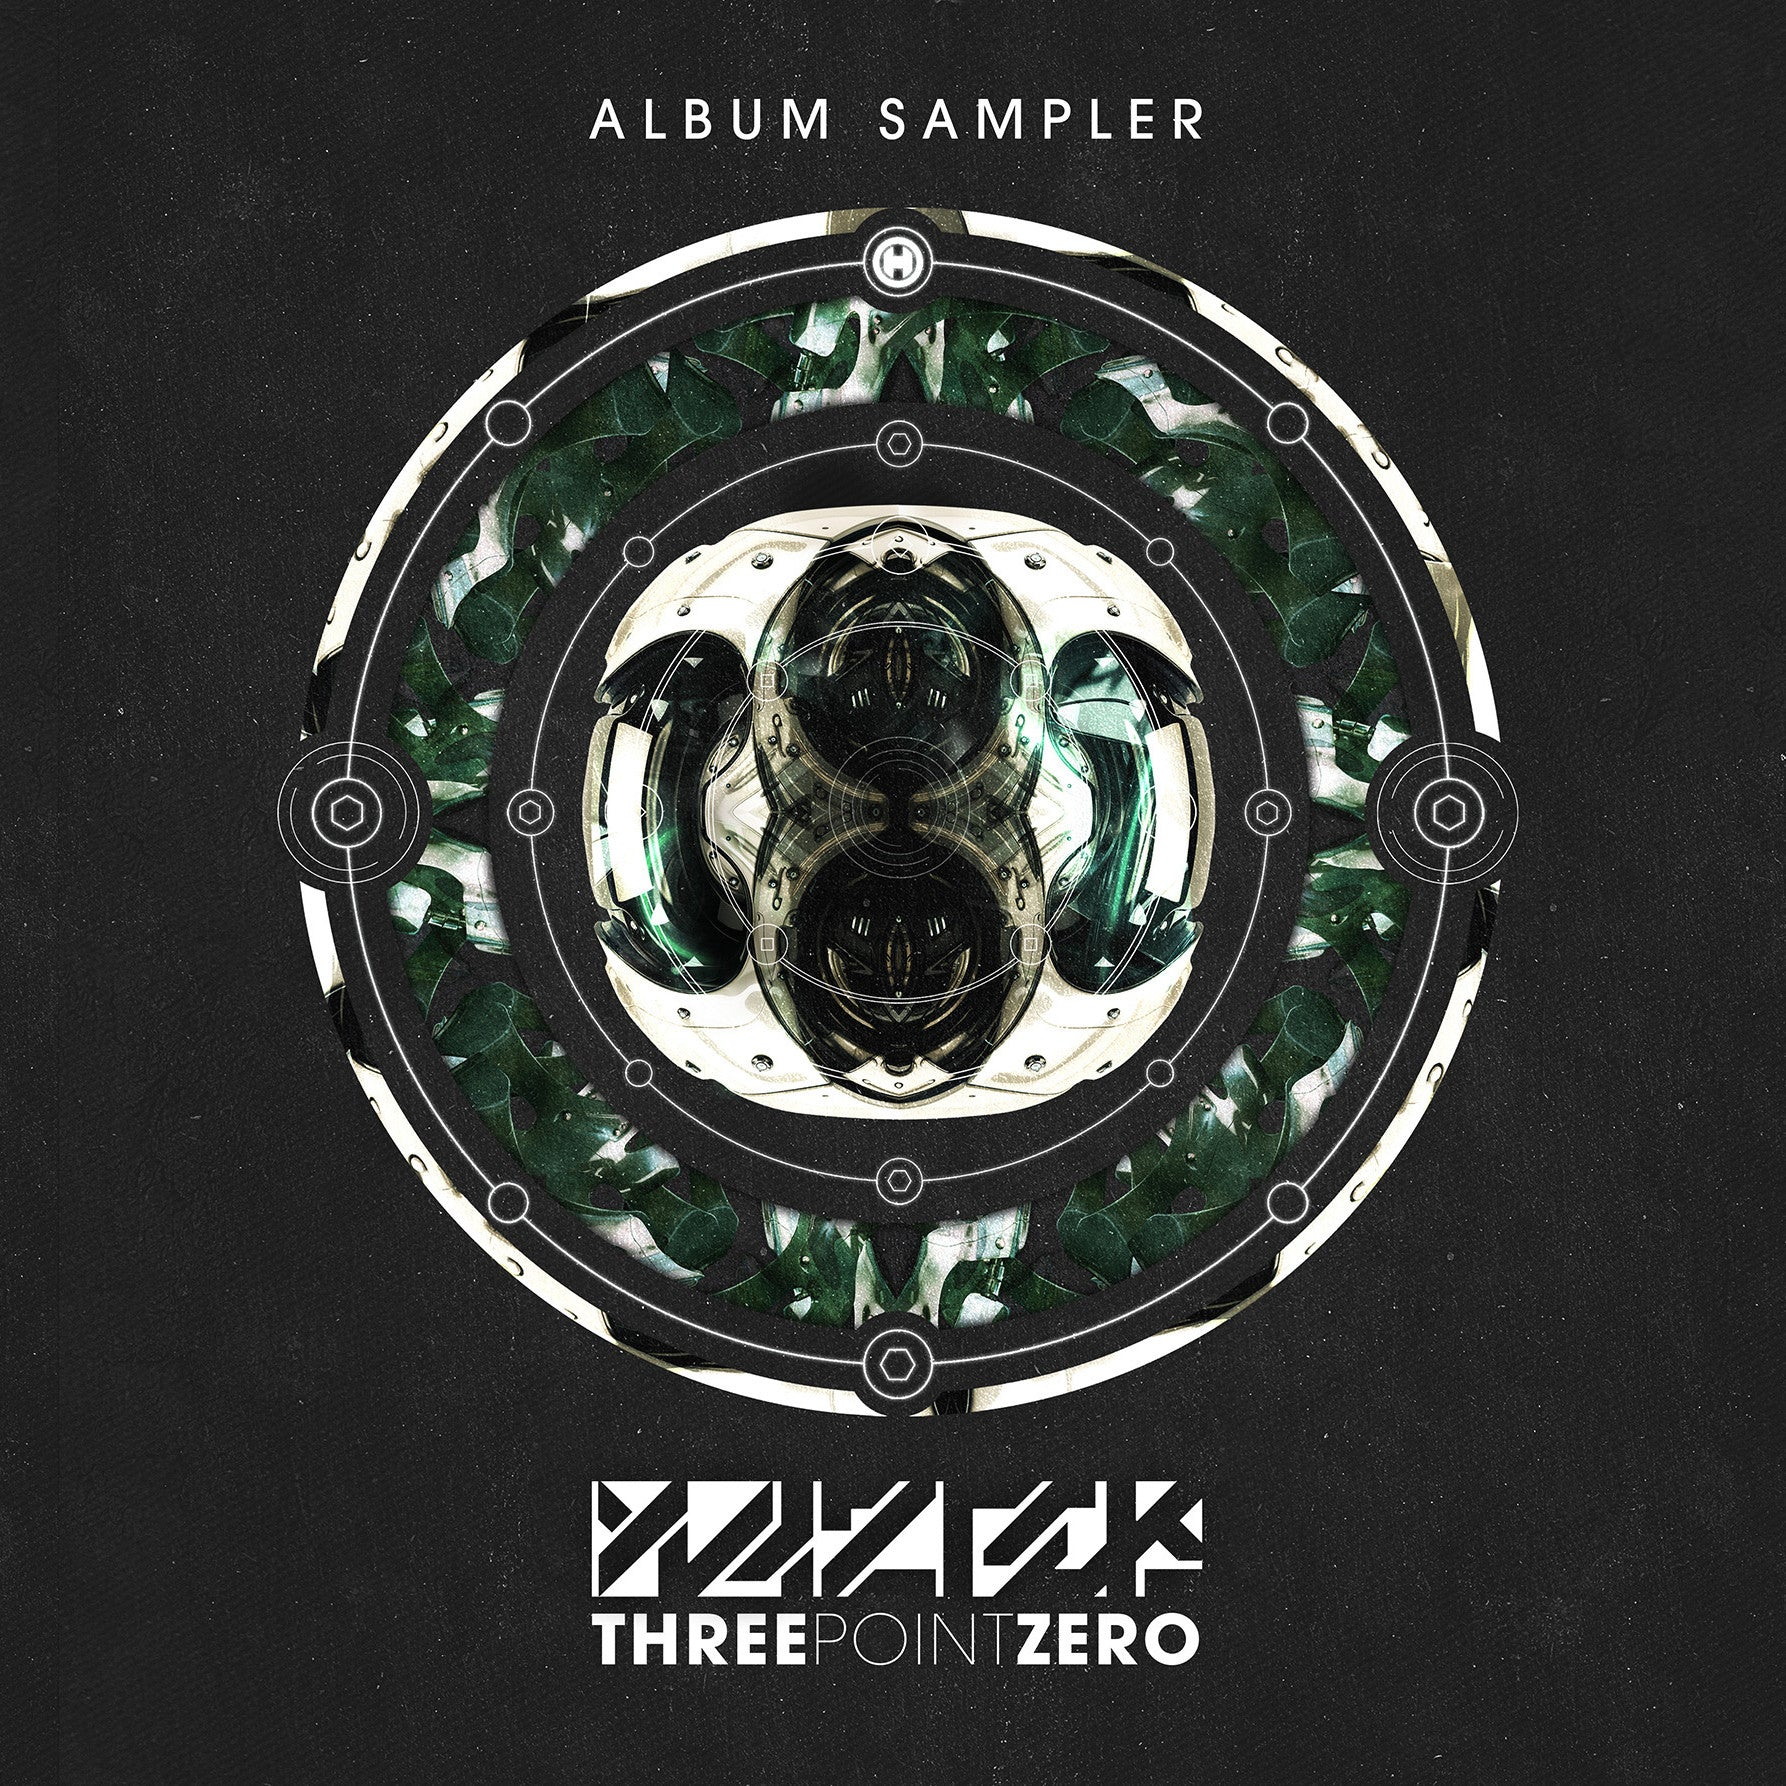 Maztek - ThreePointZero - Album Sampler - Unearthed Sounds